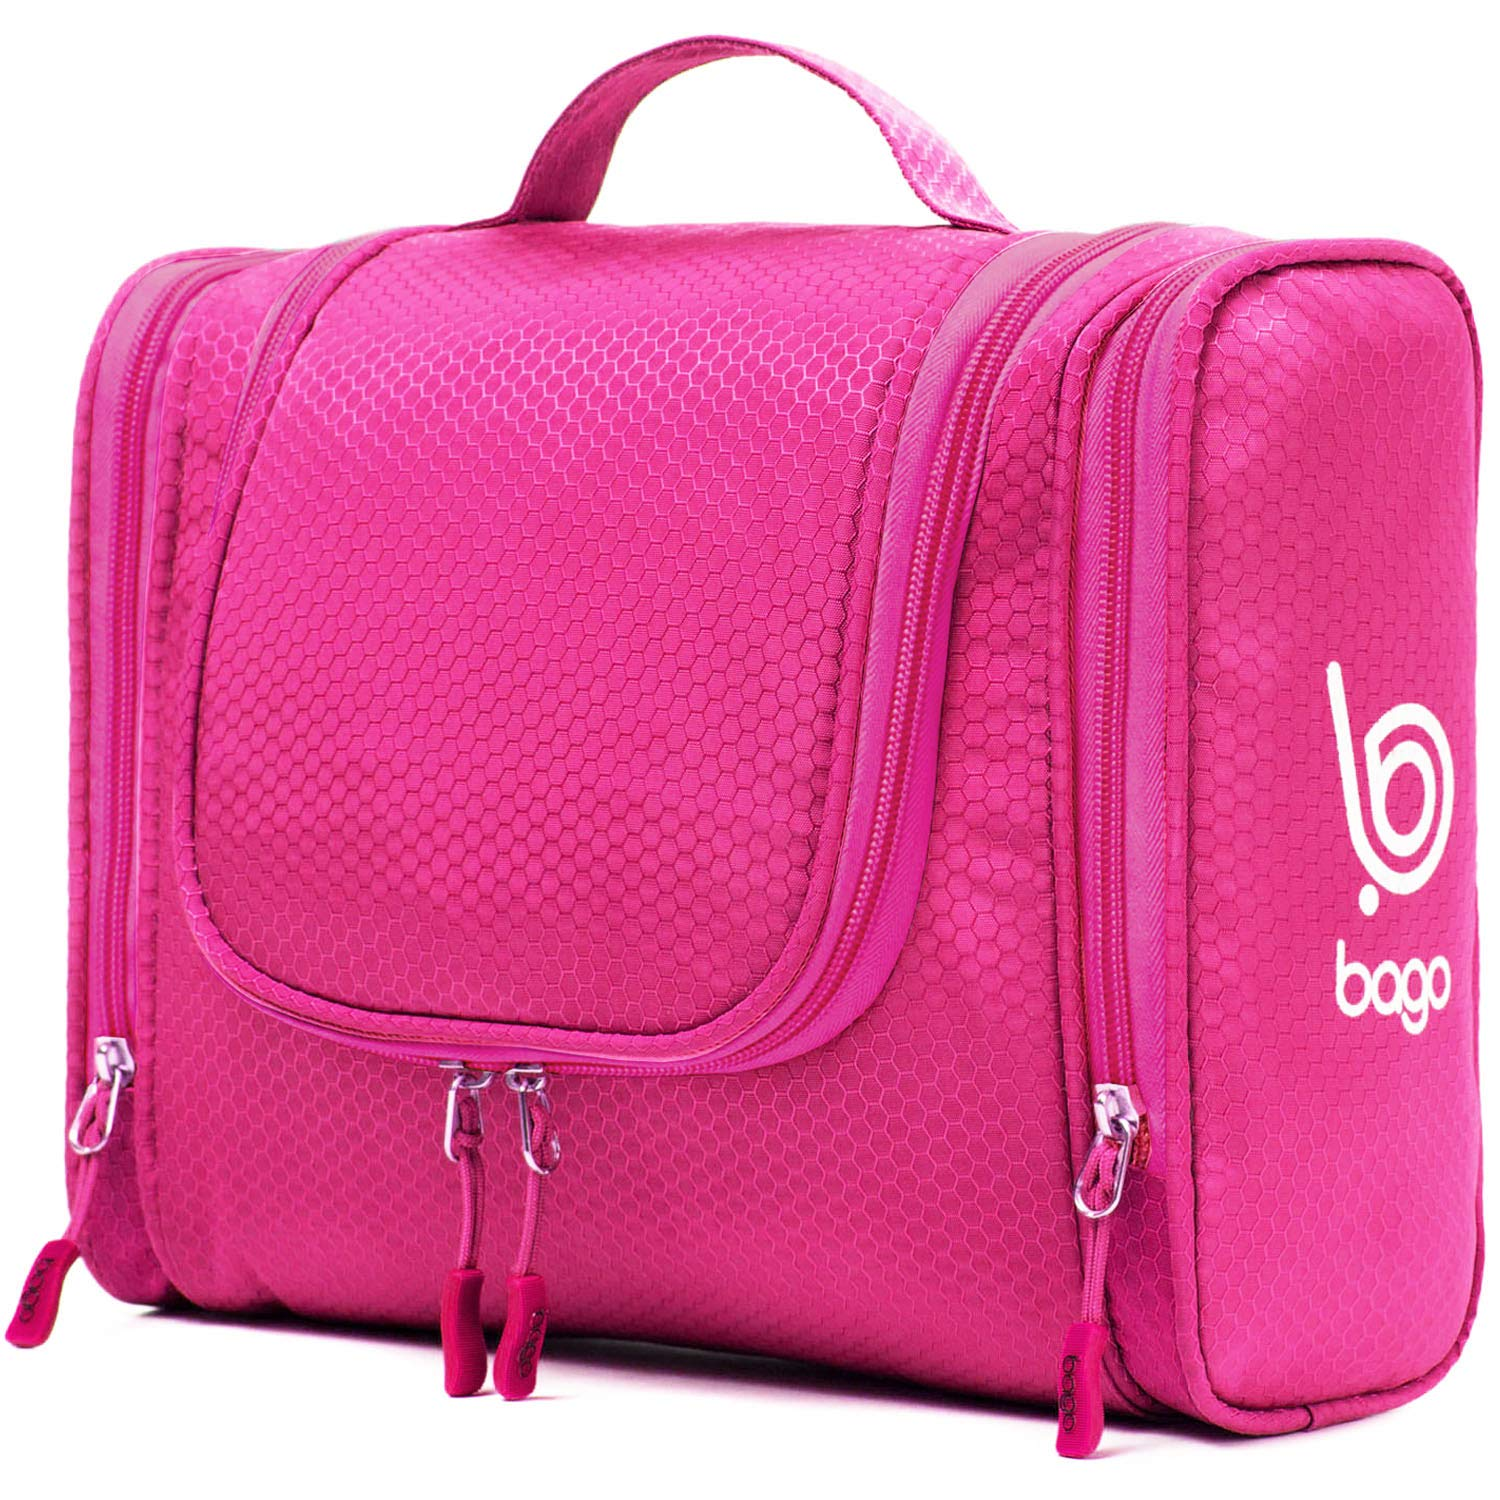 Bago Hanging Toiletry Bag For Women   Men - Leak Proof Travel Bags for Toiletries with Hanging Hook   Inner Organization to Keep Items From Moving - Pack Like a PRO  Pink